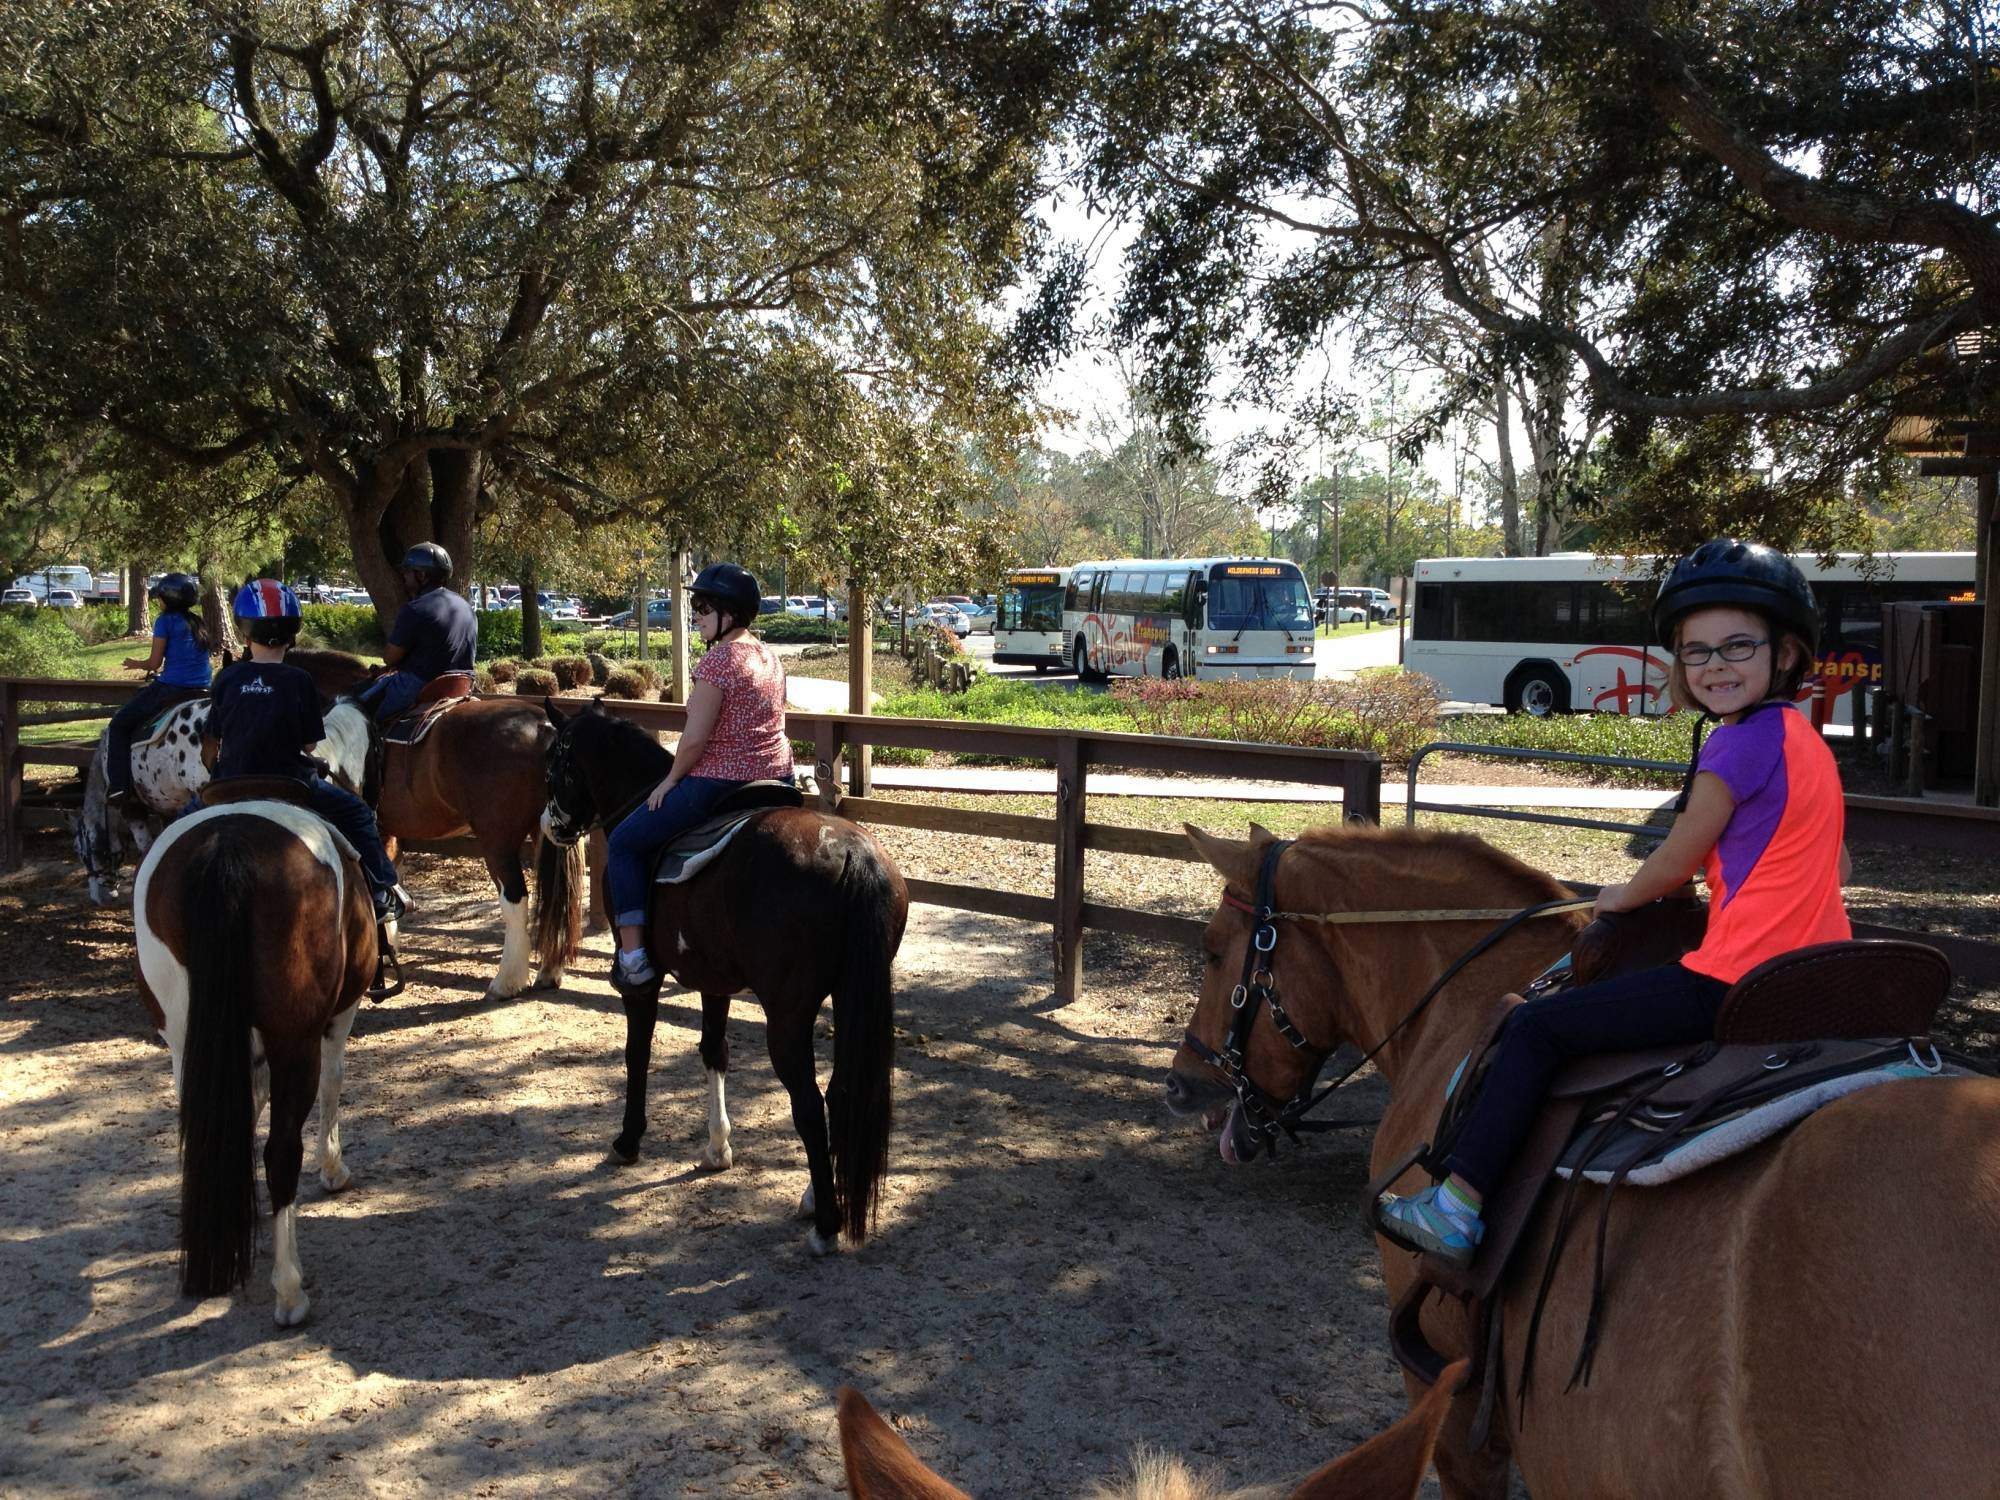 Explore Fort Wilderness from Horse-back with a Trail Ride | PassPorter.com